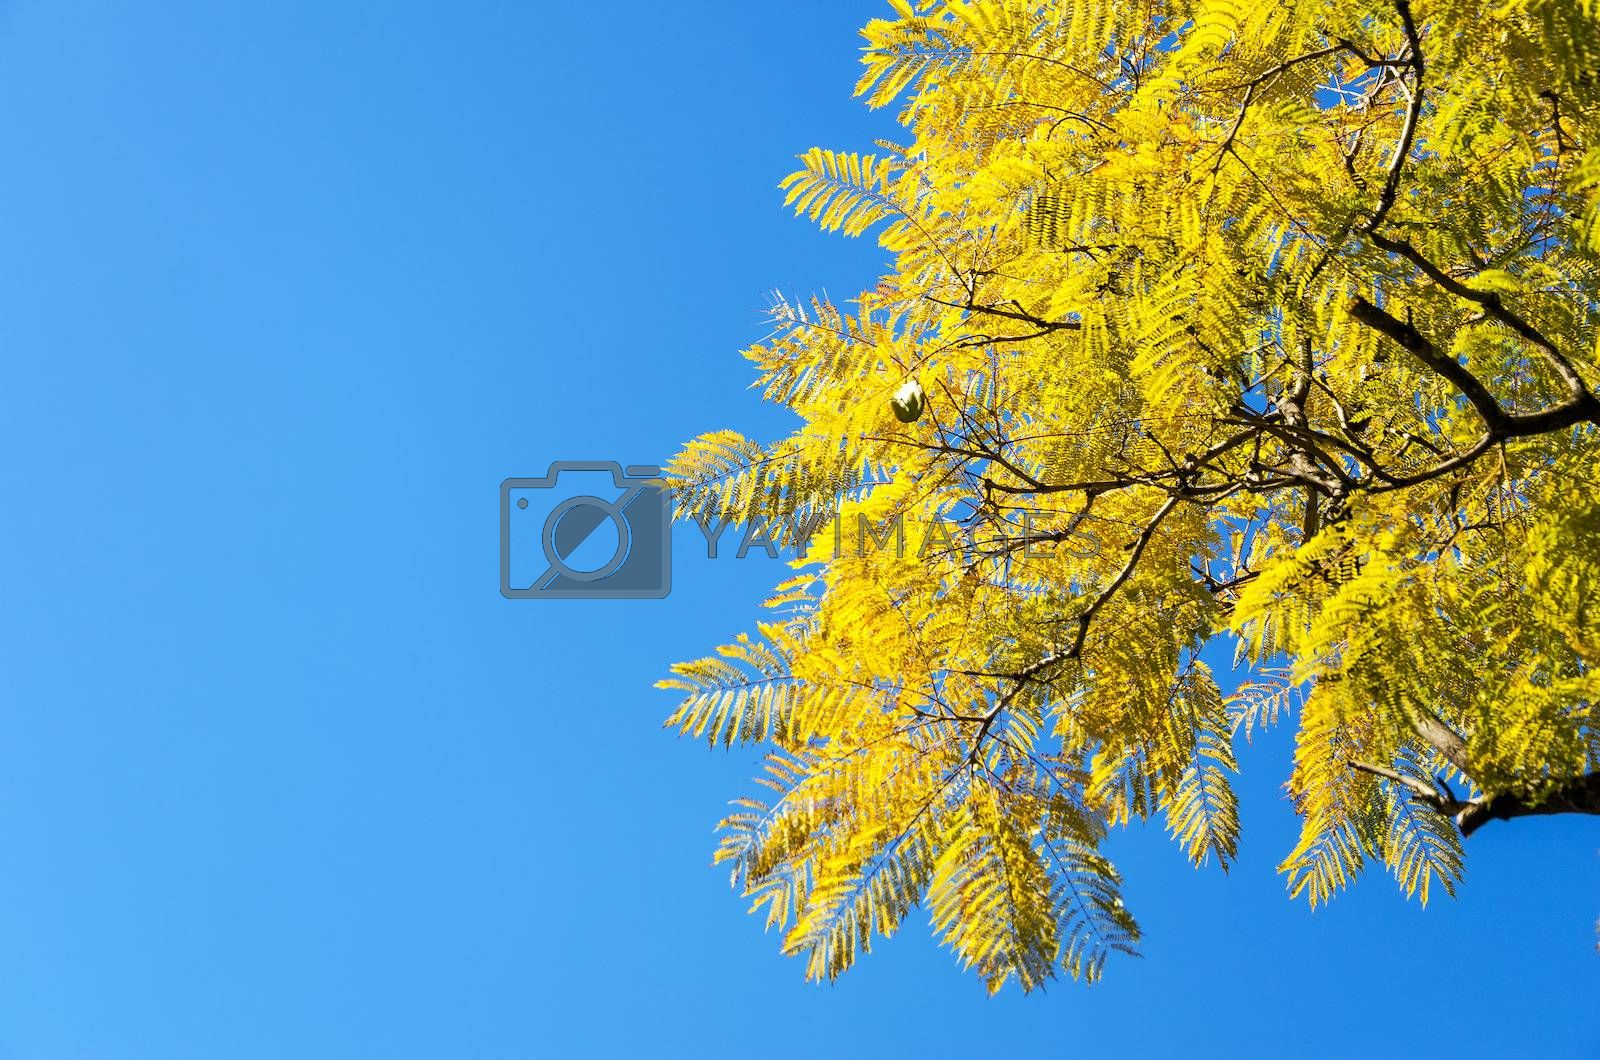 Yellowish leaves on a tree against a beautiful blue sky